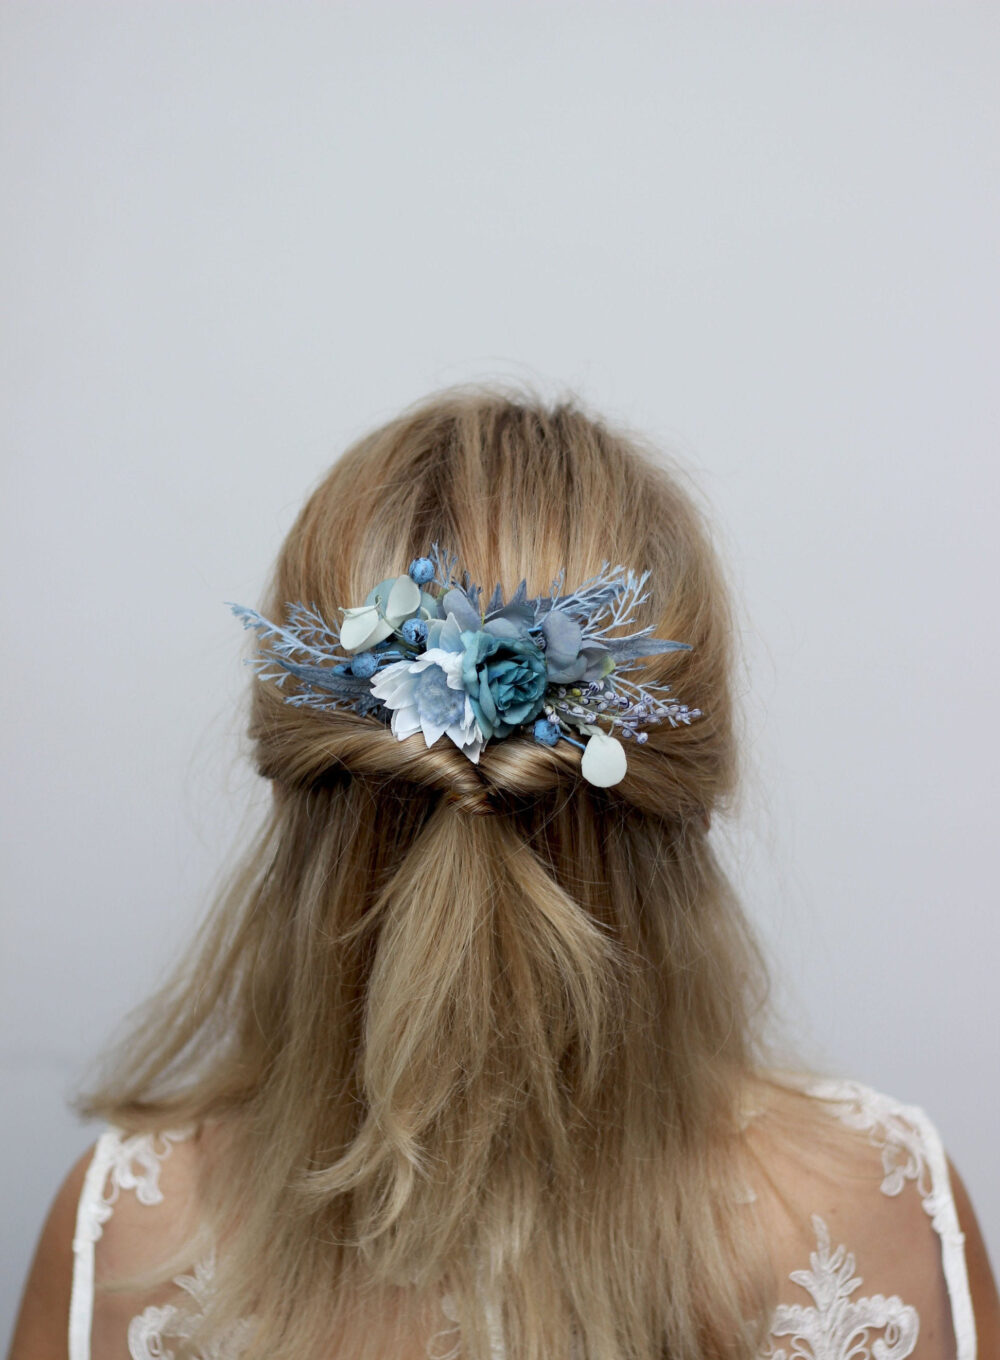 Dusty Blue Wedding Pale Floral Comb Flower Headpiece Bridal Flower Bridesmaid Hair Flowers